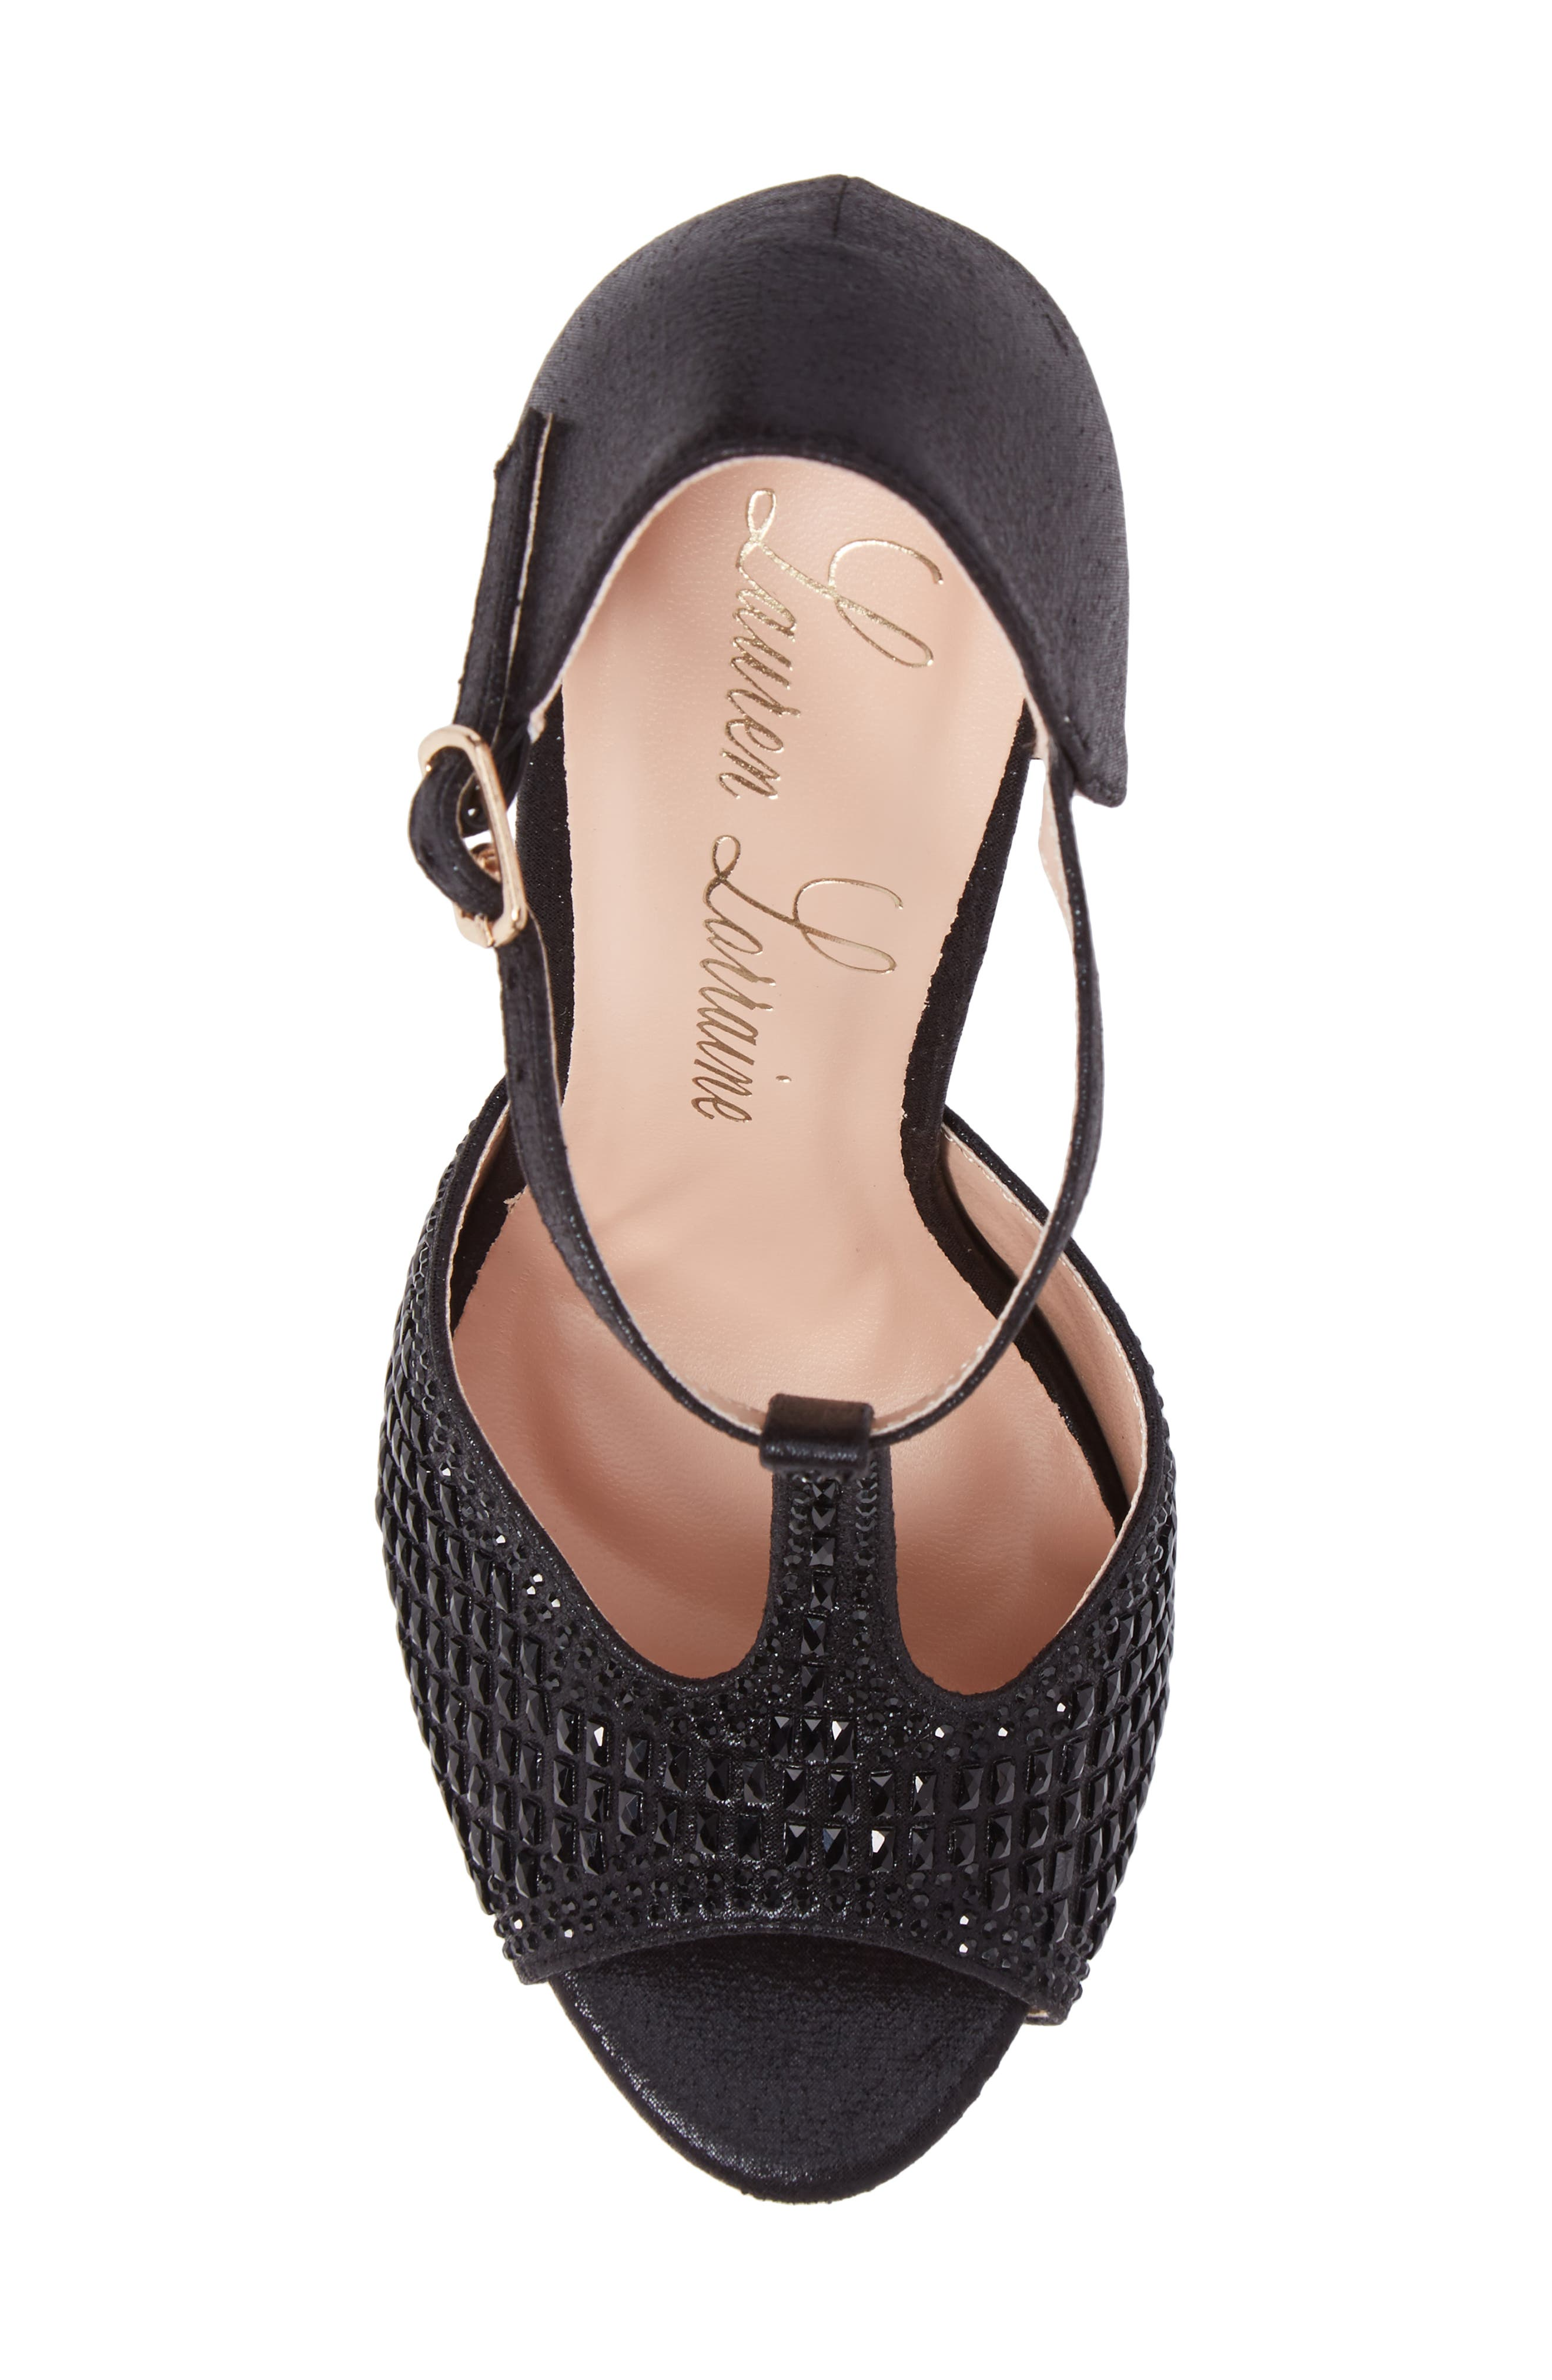 Vivian 4 Crystal Embellished Sandal,                             Alternate thumbnail 5, color,                             Black Shimmer